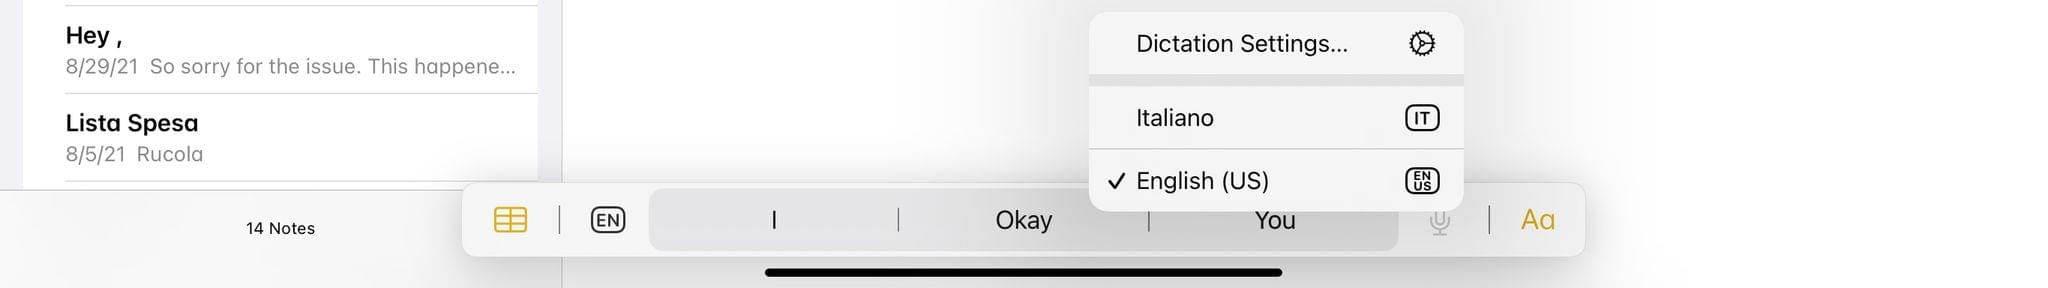 Right-click the microphone button to access dictation settings.